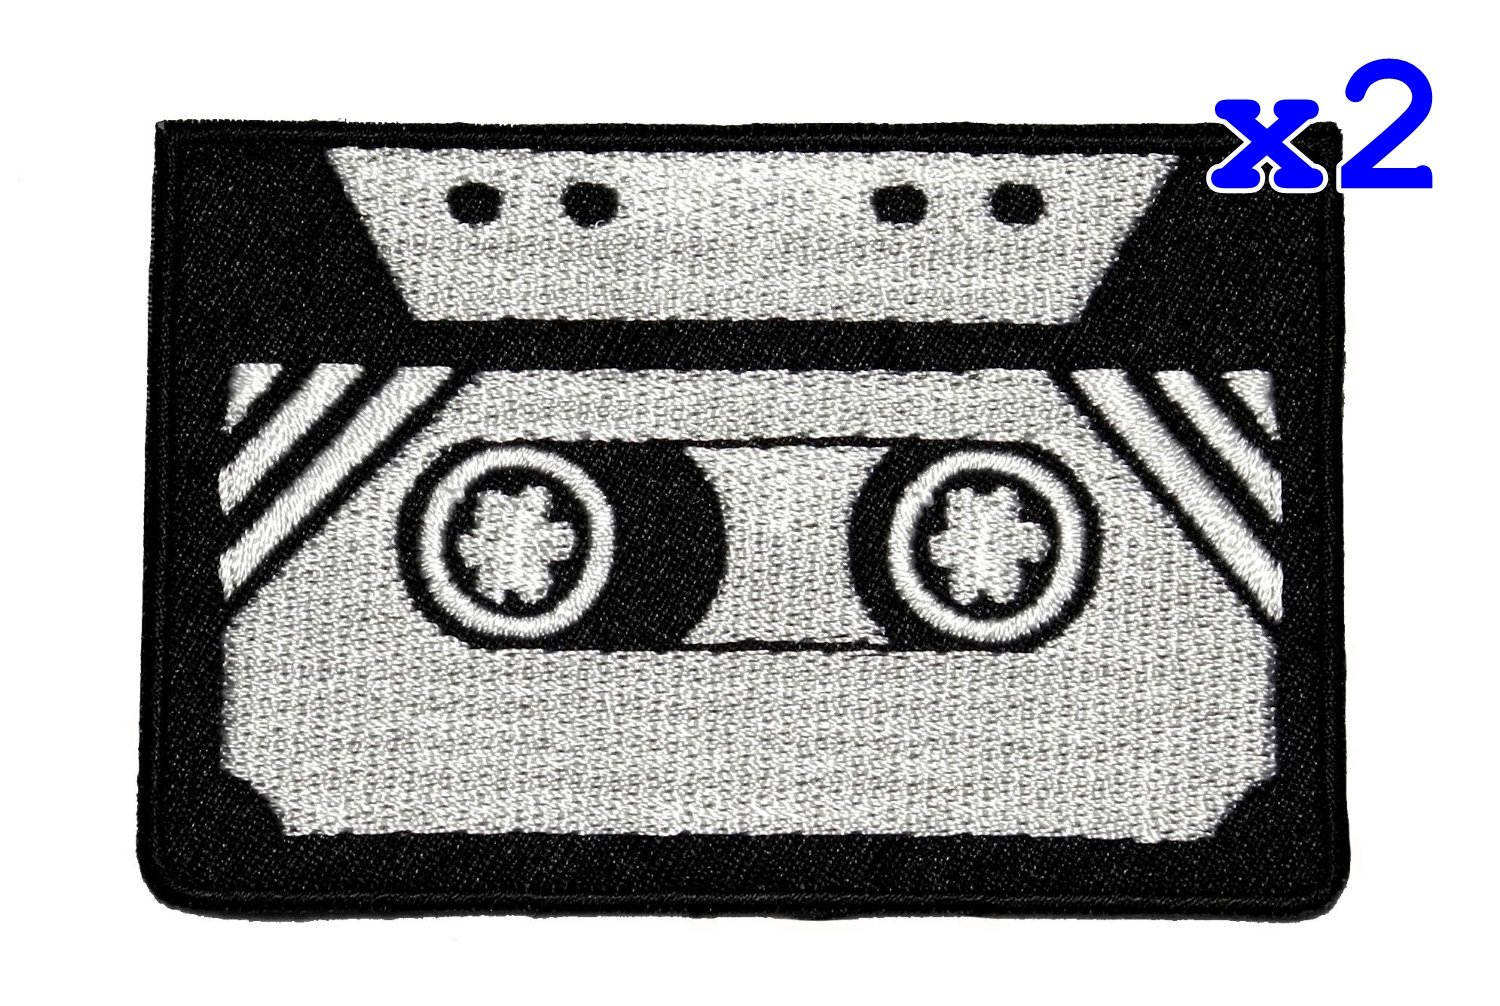 Tape Cassette Retro DIY Applique Embroidered Sew Iron on Patch TCS-01 PA International Trading Co. Ltd 4337021916